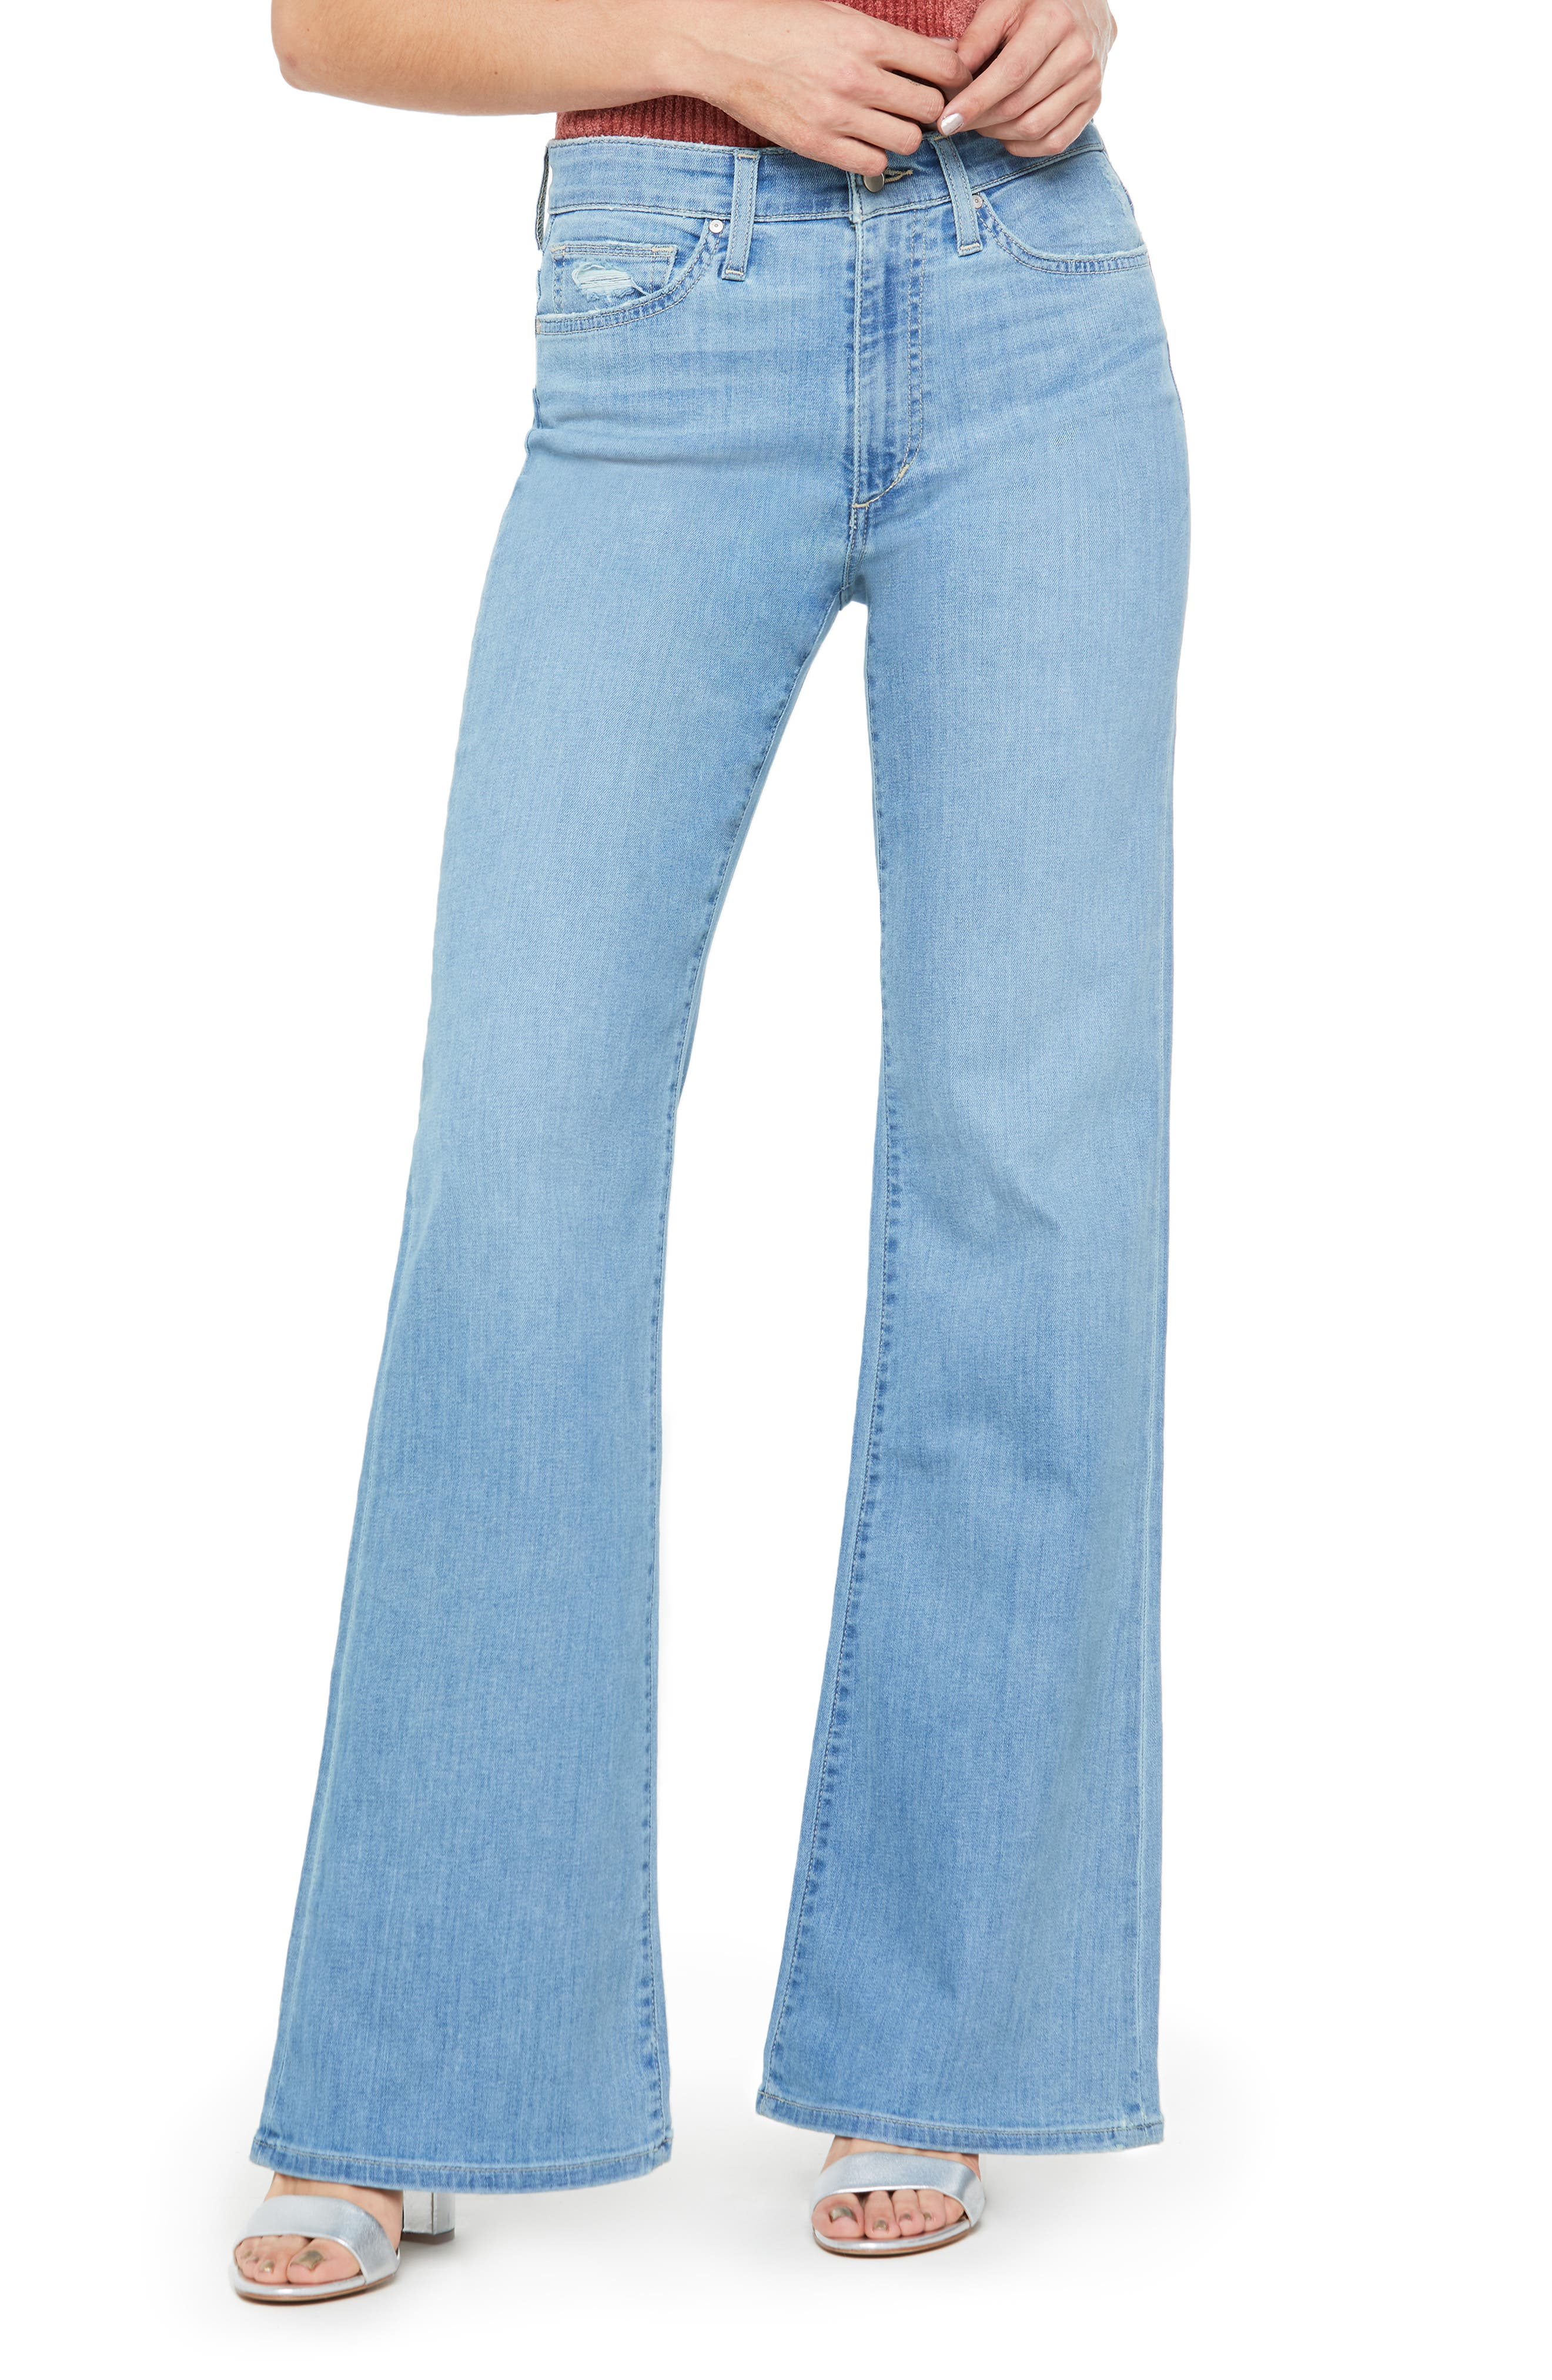 60s – 70s Pants, Jeans, Hippie, Bell Bottoms, Jumpsuits Womens Joes The Molly High Waist Flare Jeans Size 24 - Blue $178.00 AT vintagedancer.com